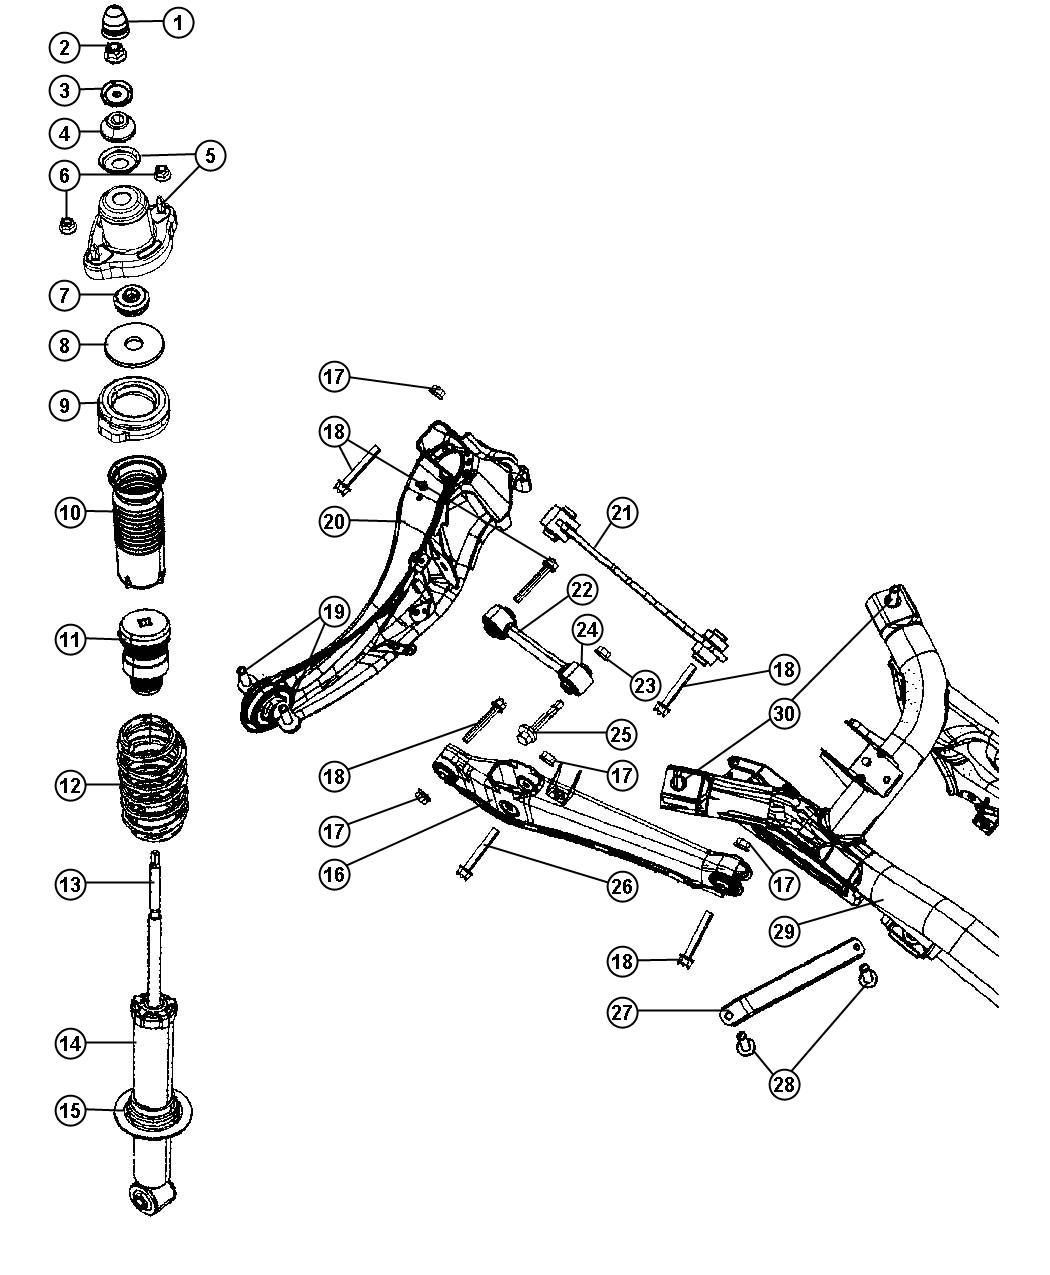 Service Manual Jeep Patriot Removing From A Struts